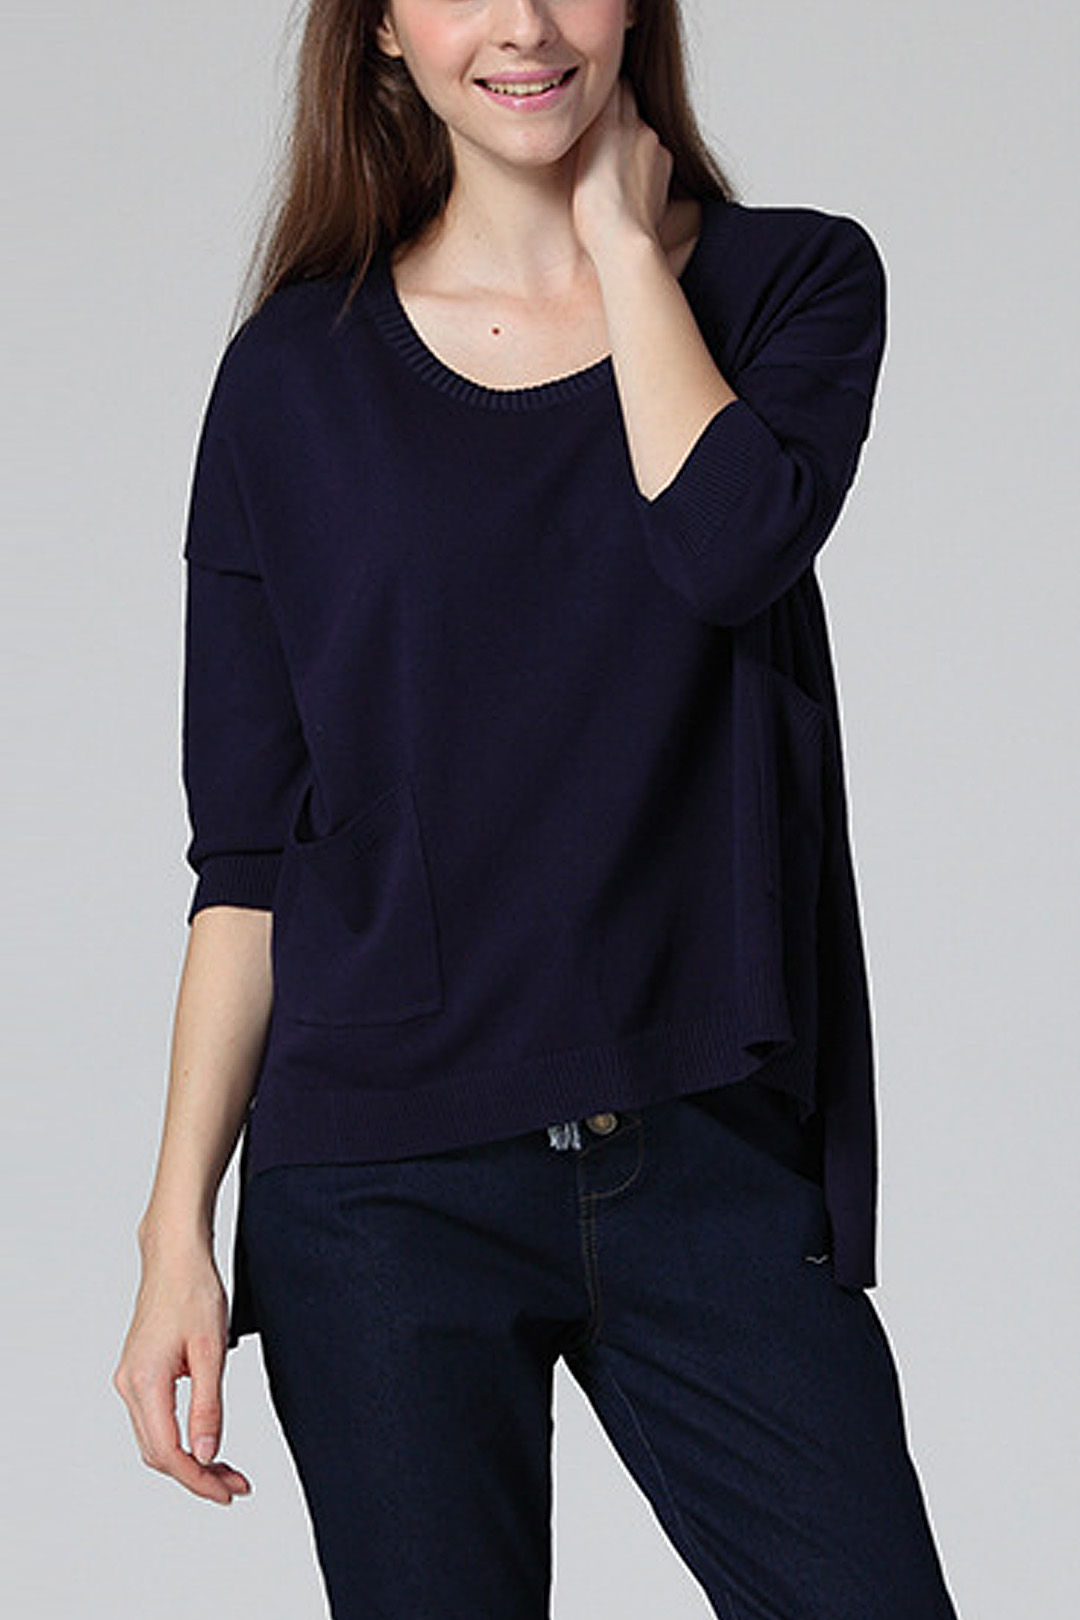 Navy Blue 1/2 Sleeve Relaxed Knit Top with High Low Hem